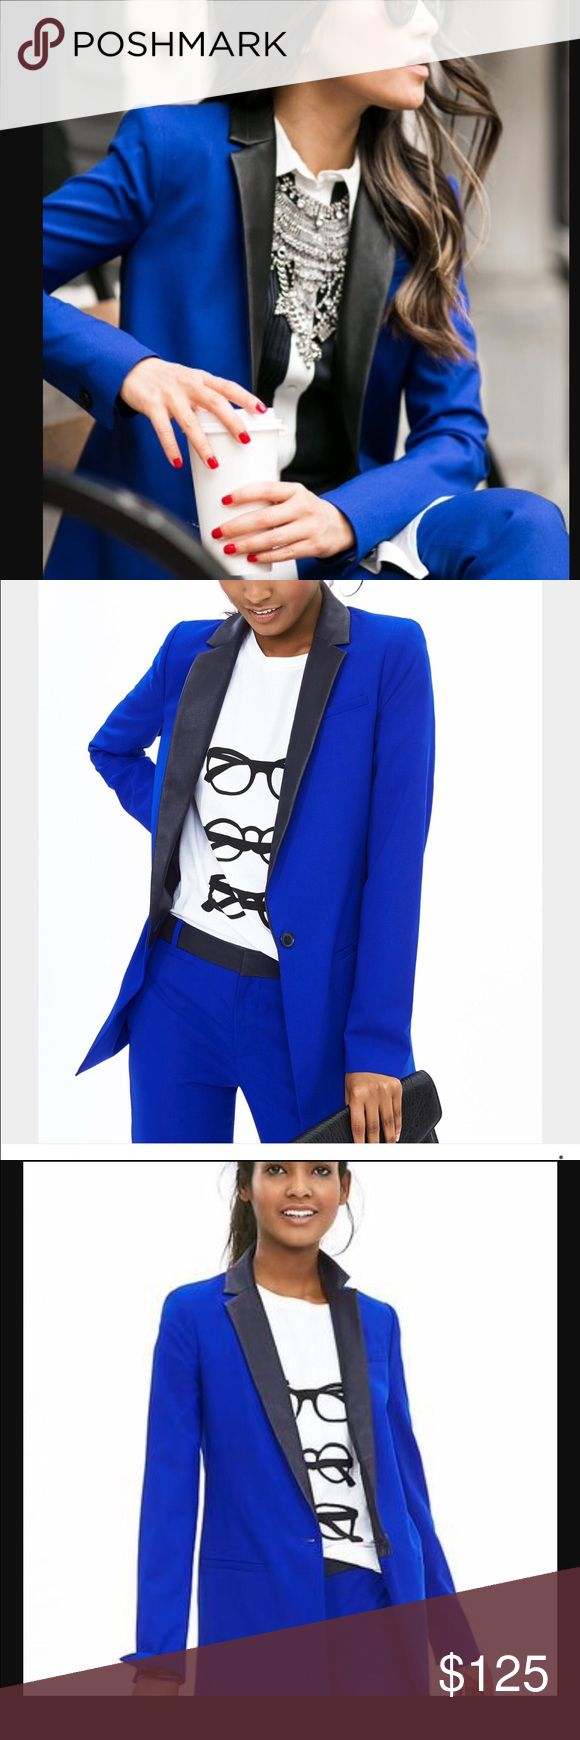 Banana Republic Royal Blue Blazer size 12 new Banana Republic Royal Blue Blazer size 12 new Banana Republic Jackets & Coats Blazers